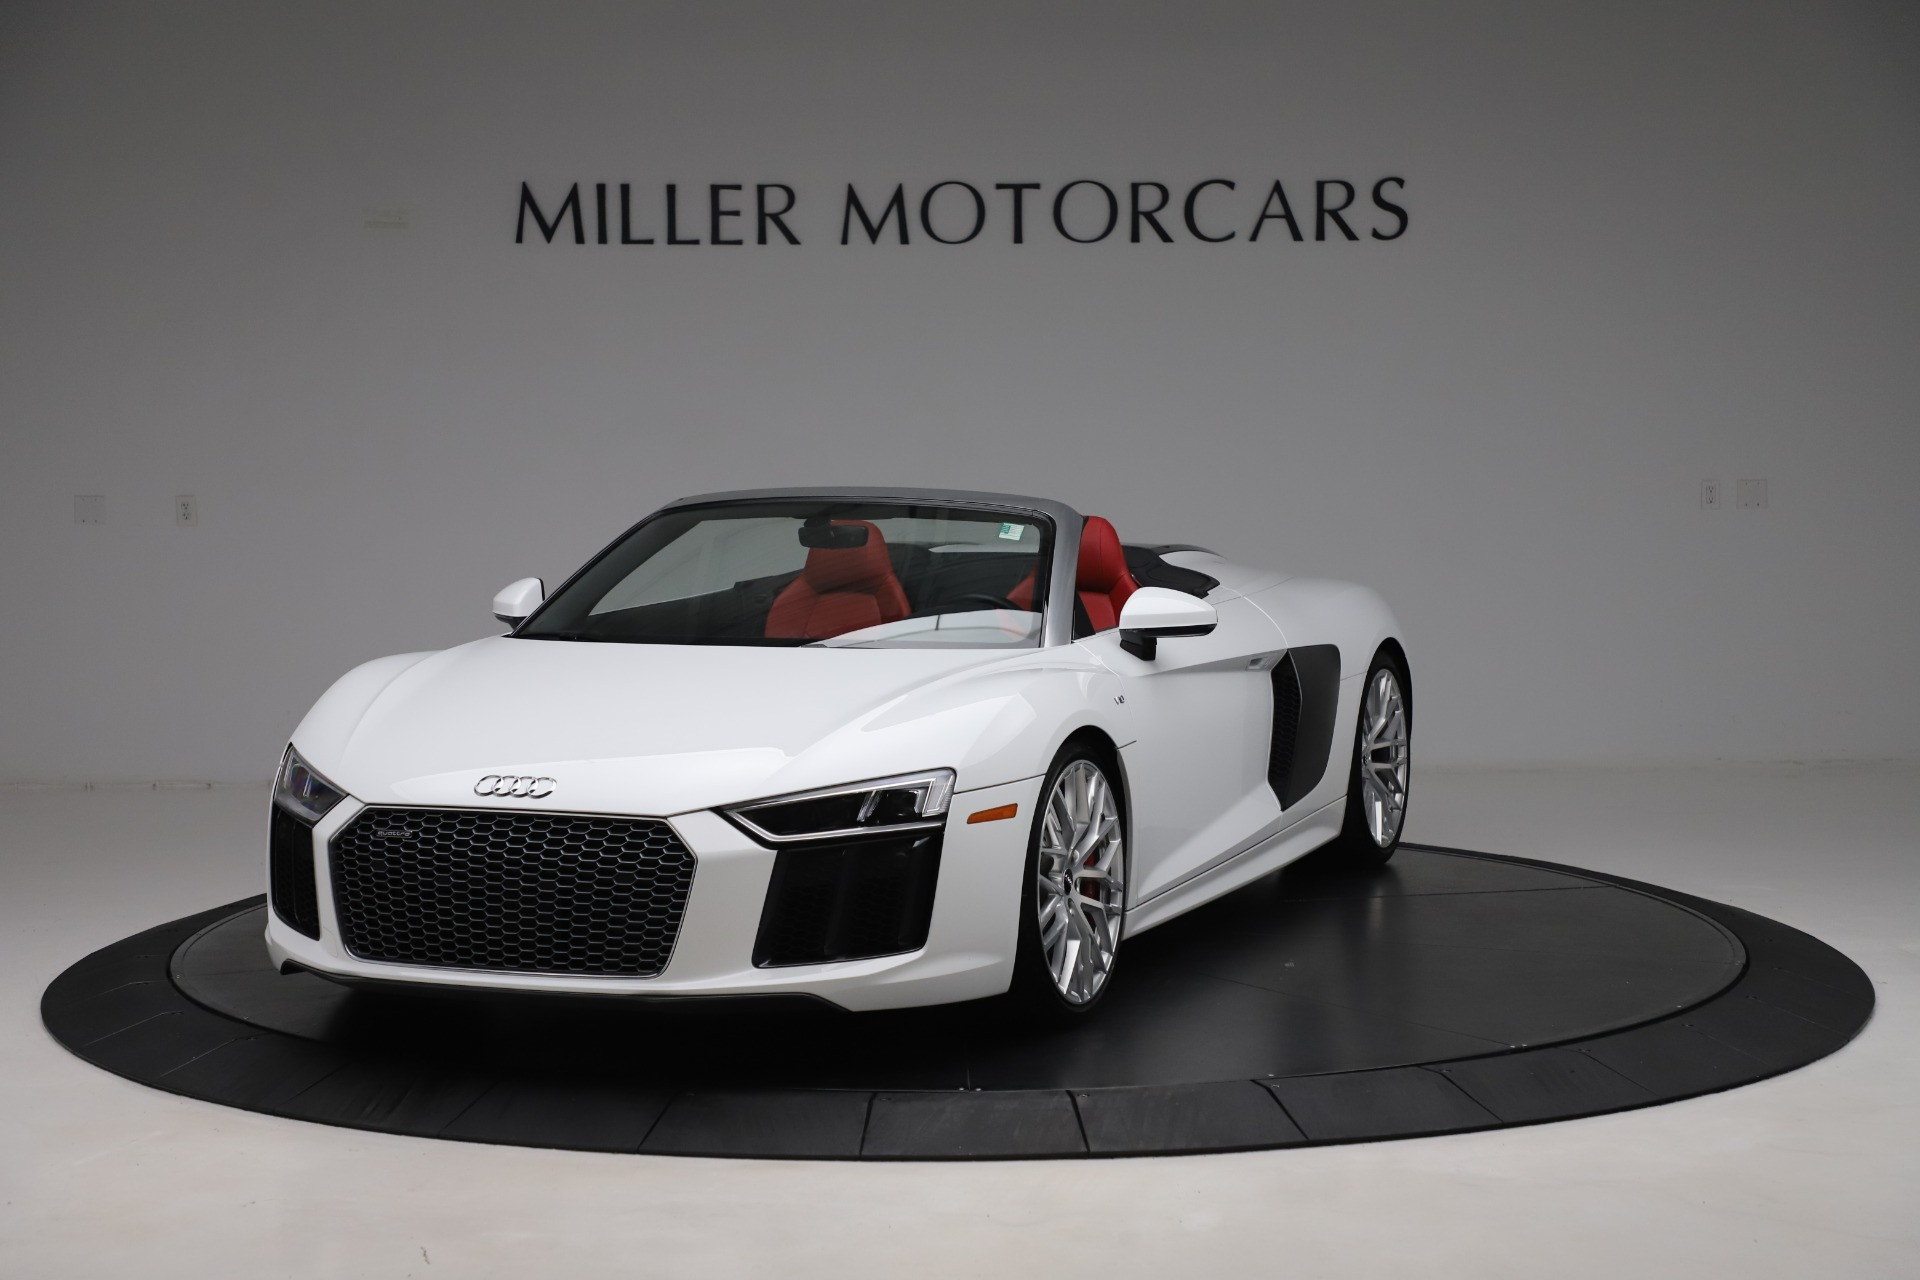 Used 2017 Audi R8 5.2 quattro V10 Spyder for sale $138,900 at Bentley Greenwich in Greenwich CT 06830 1